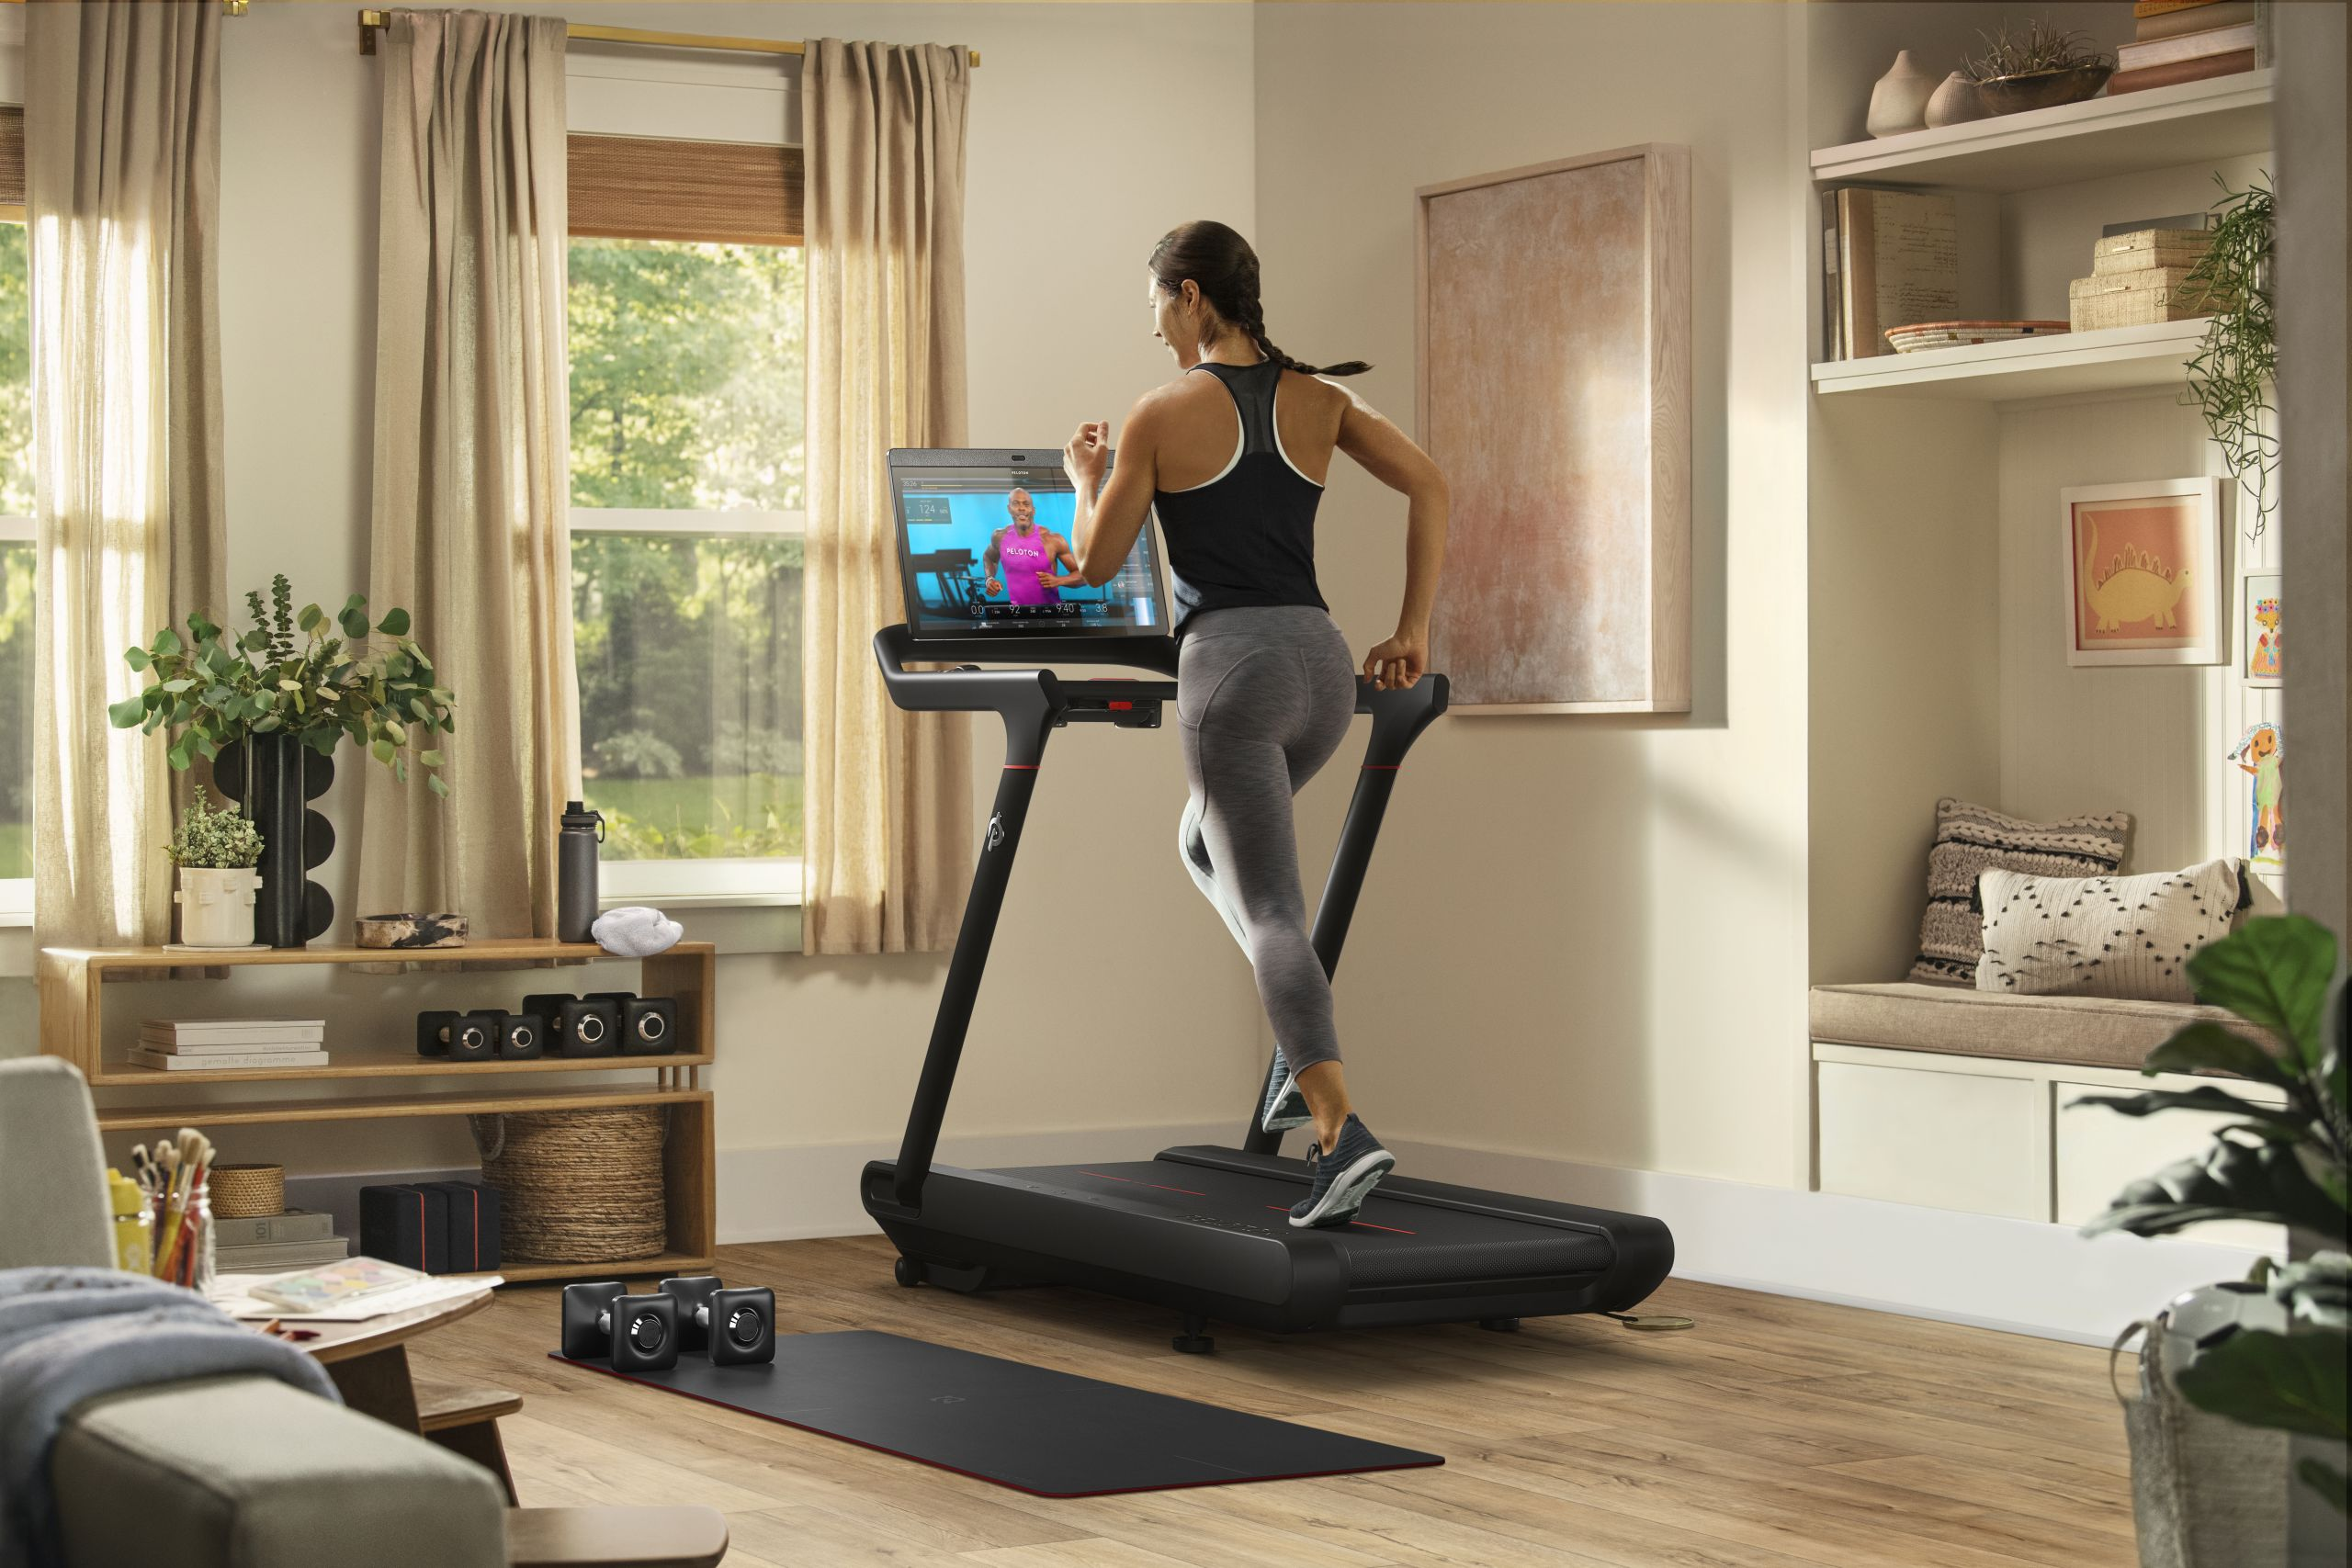 Hard Times Henry Left Leg Roblox Peloton Launches New Bike And Tread Smart Home Gym Equipment Both At 2 495 Internet Technology News